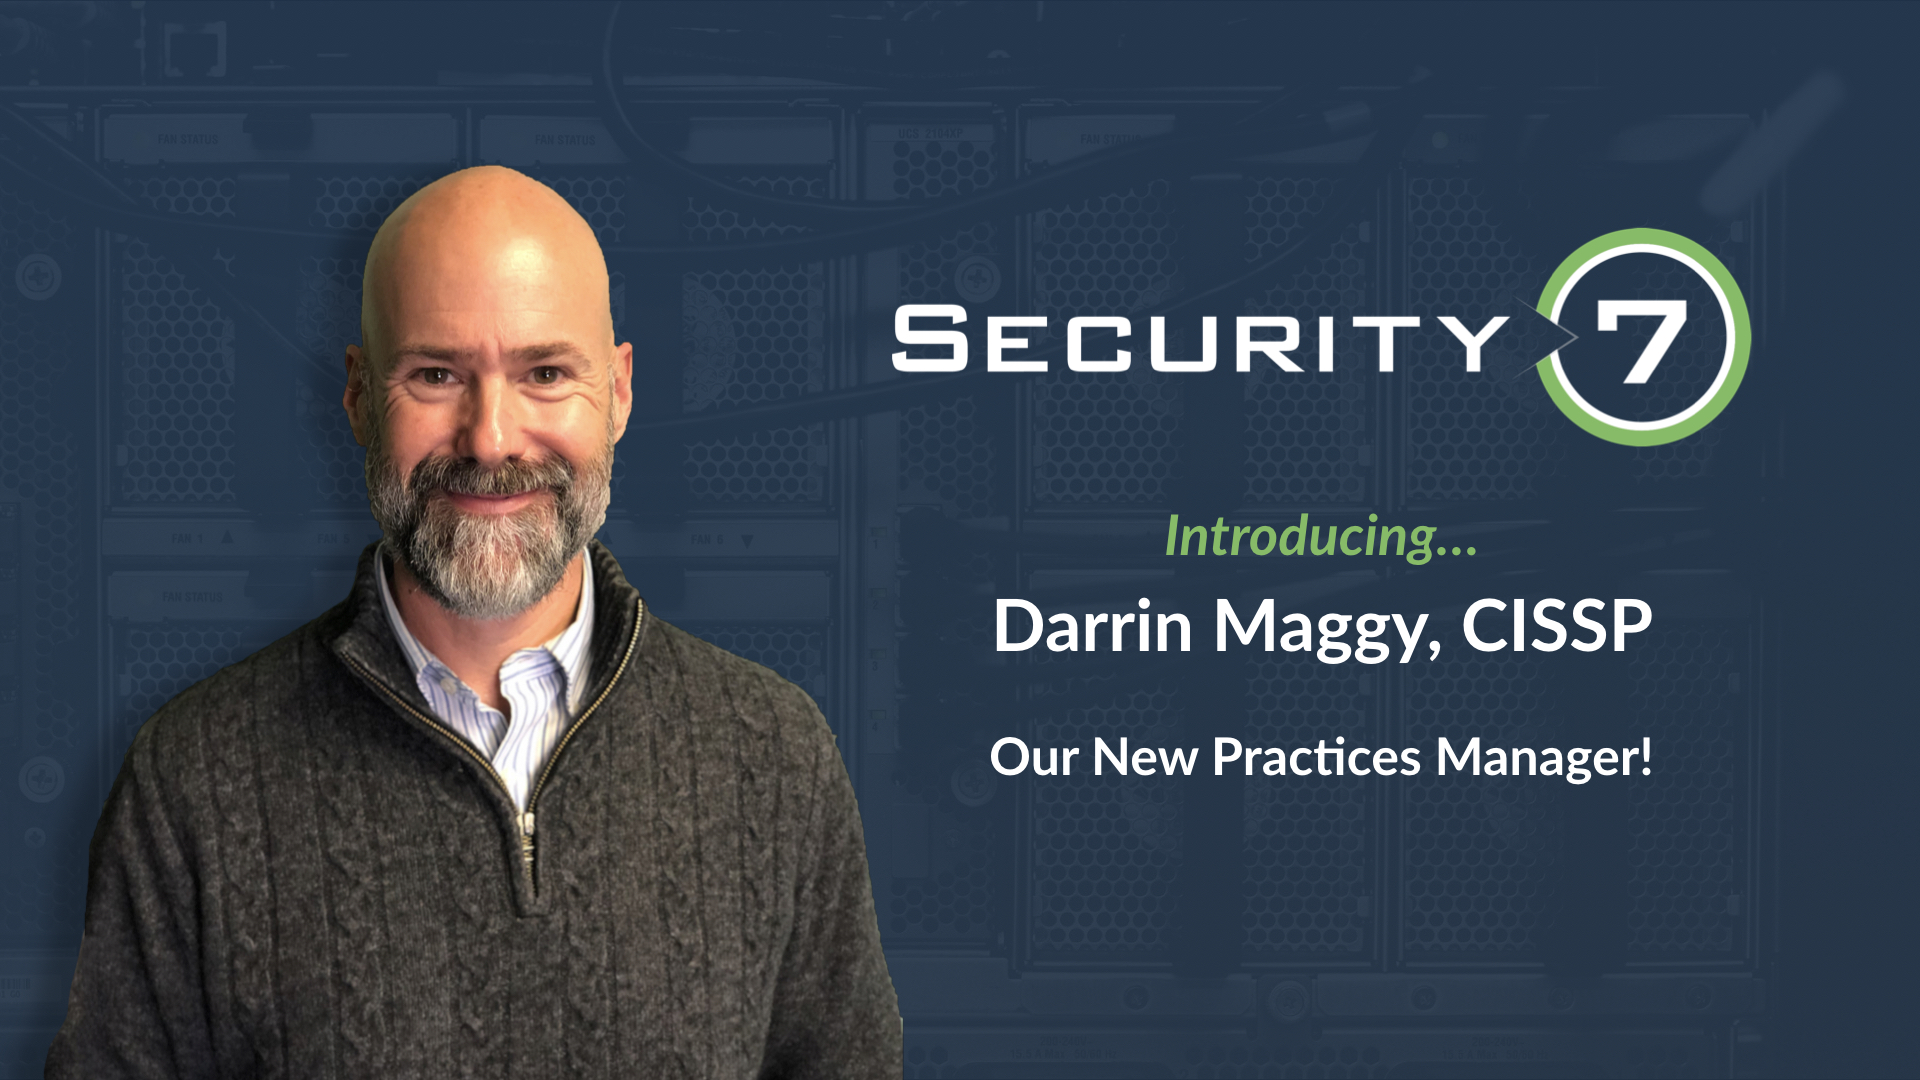 Introducing Darrin Maggy, our NEW Practice Manager